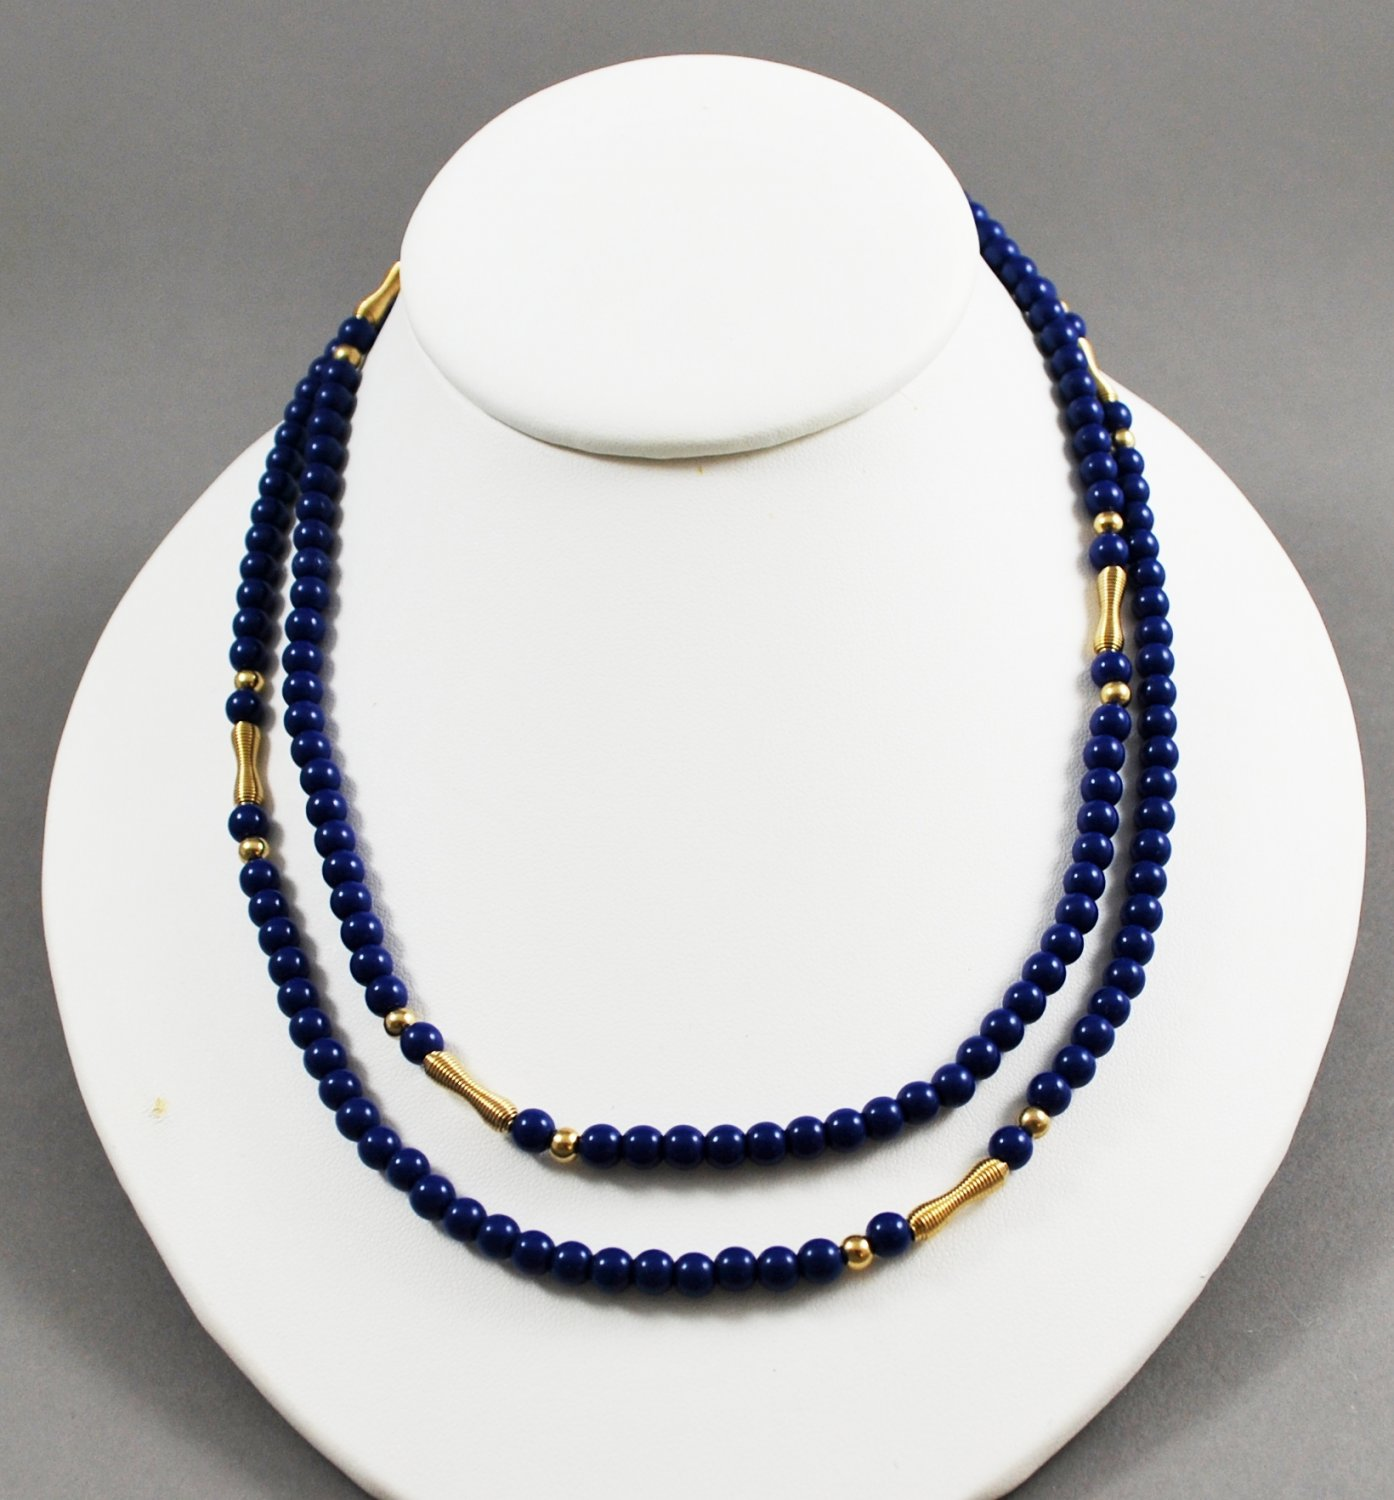 1981 Avon Jewelry Royal Azura Simulated Lapis Lazuli Blue Beaded Necklace